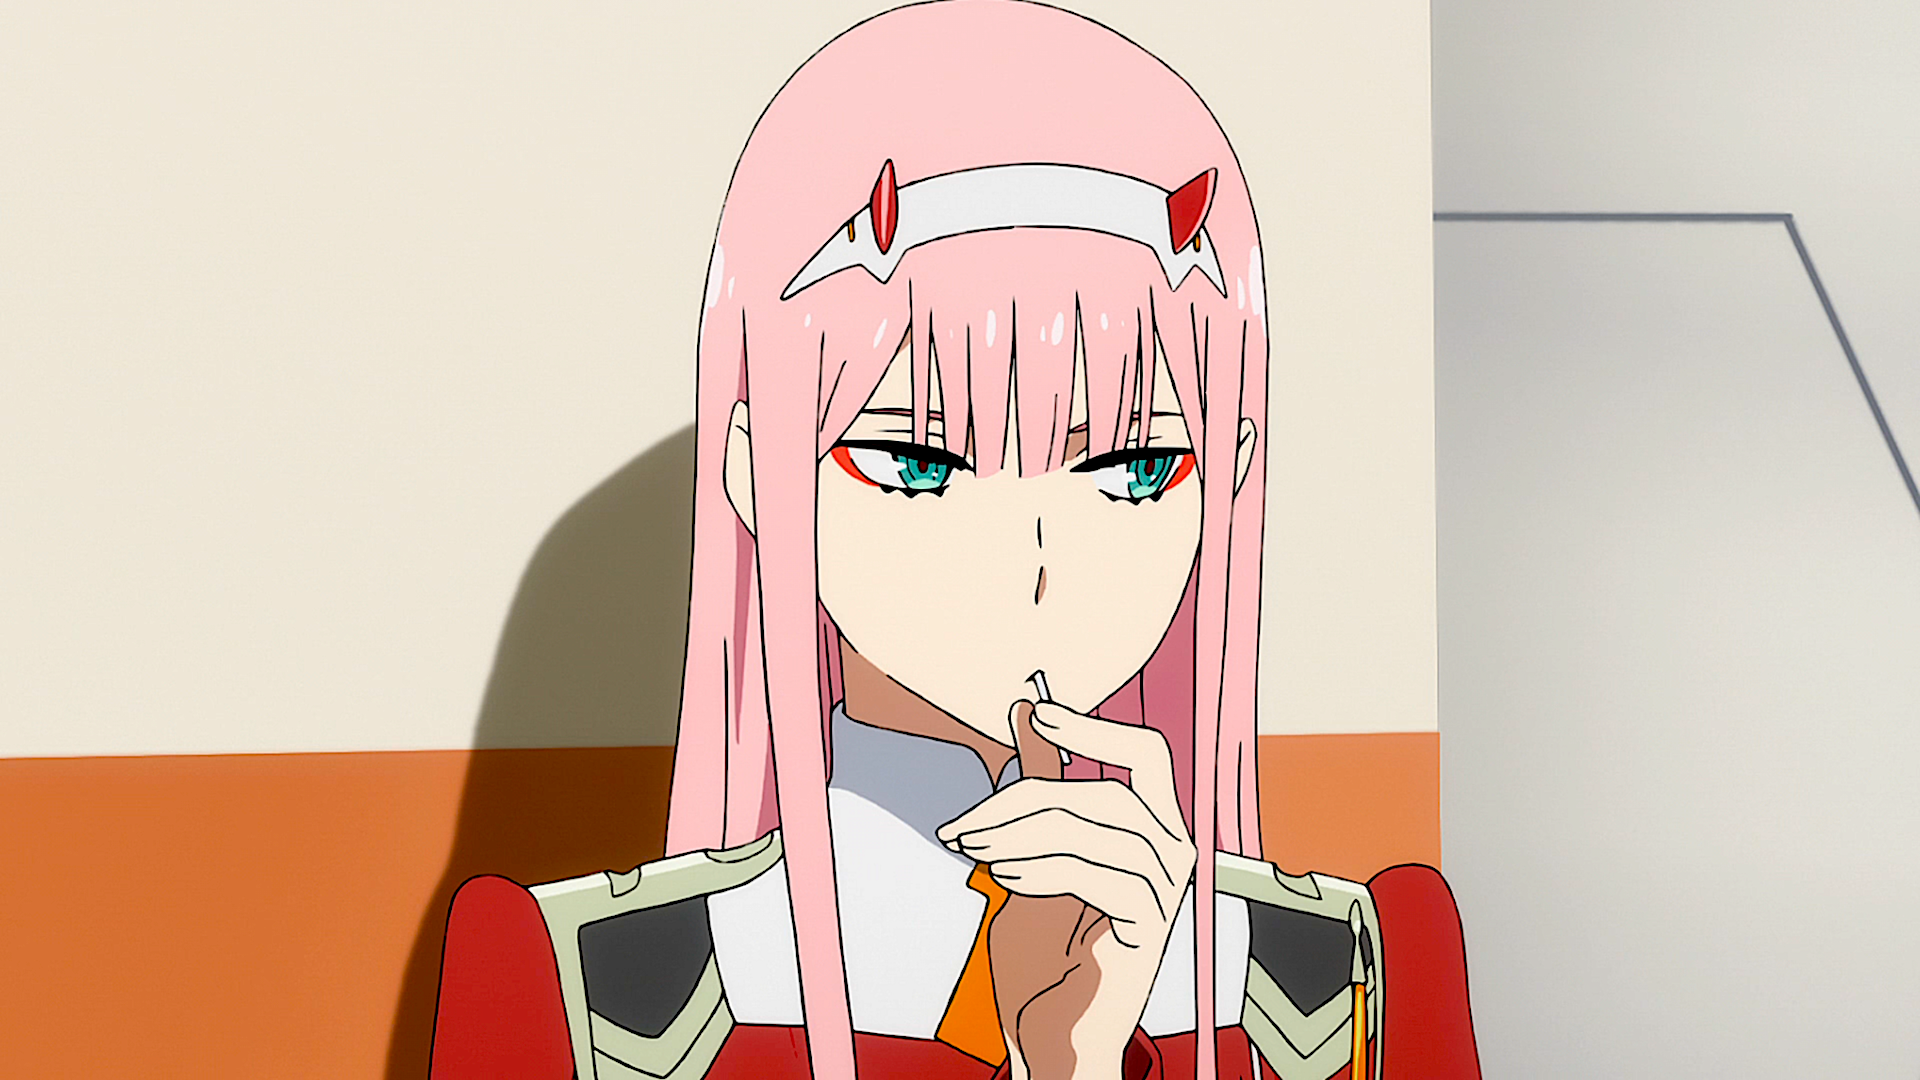 Zero Two Anime Girl With Pink Hair And Red Devil Horns - Novocom.top